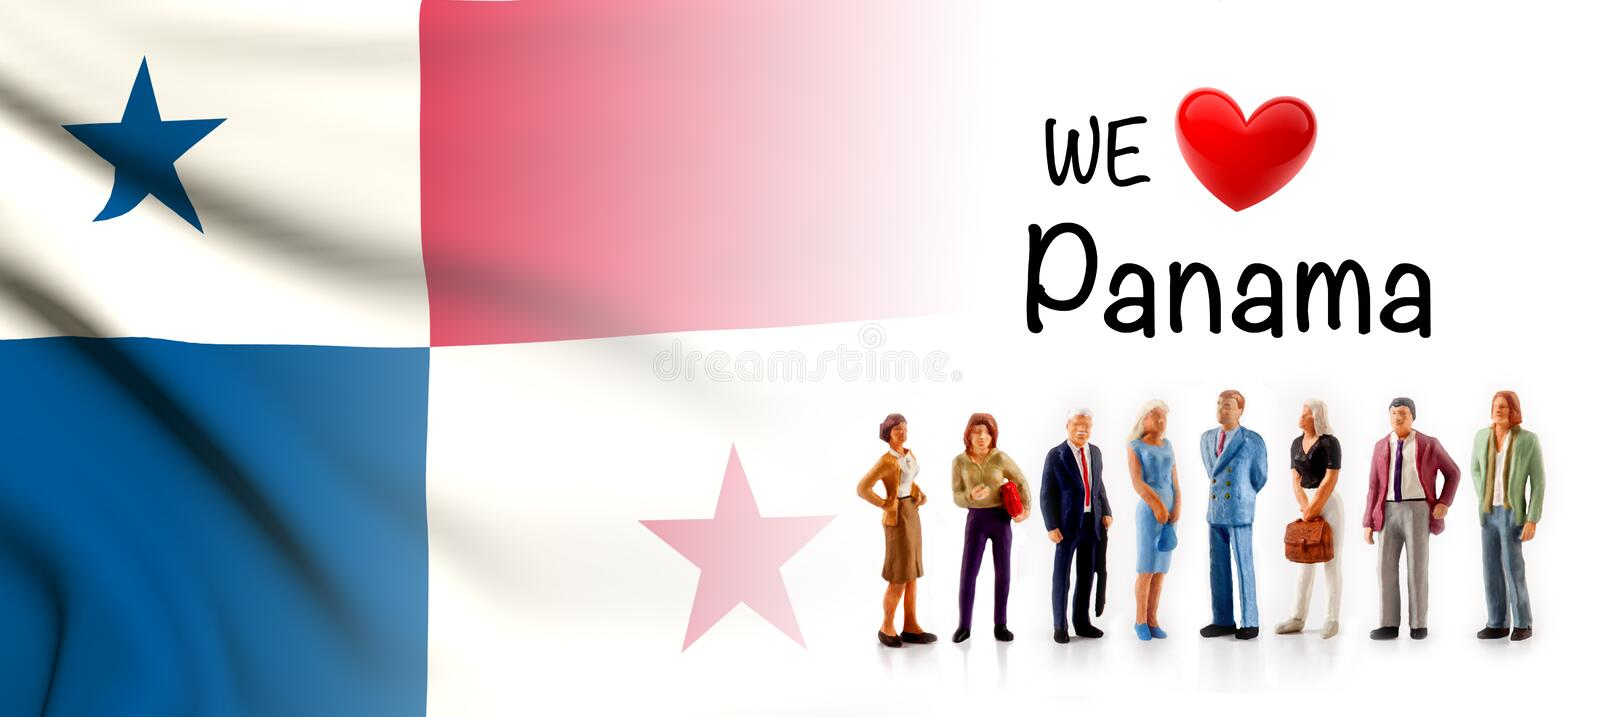 We love Panama, A group of people pose next to the Panamanian flag vector illustration